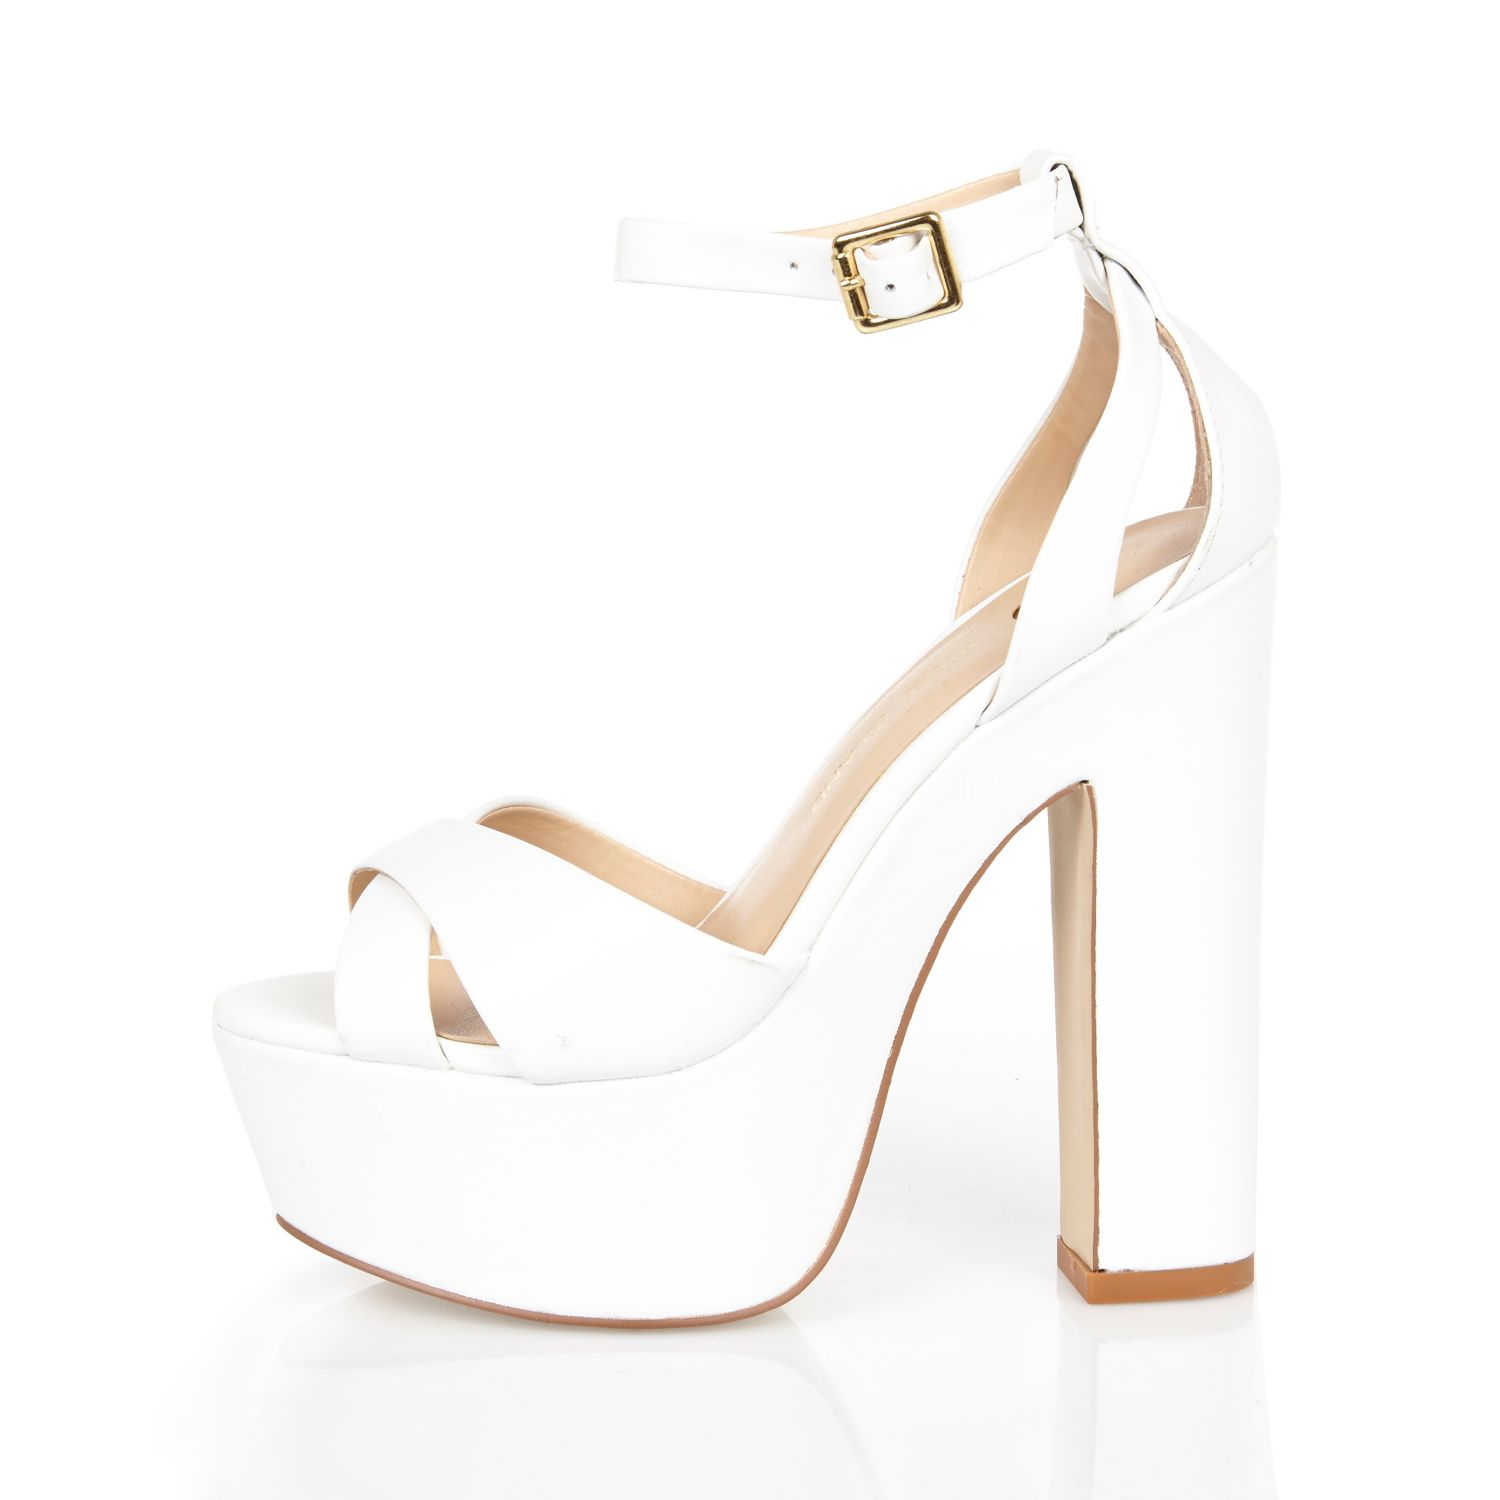 29dcbef9f8a6 River Island White Leather Chunky Block Platform Heels in White - Lyst